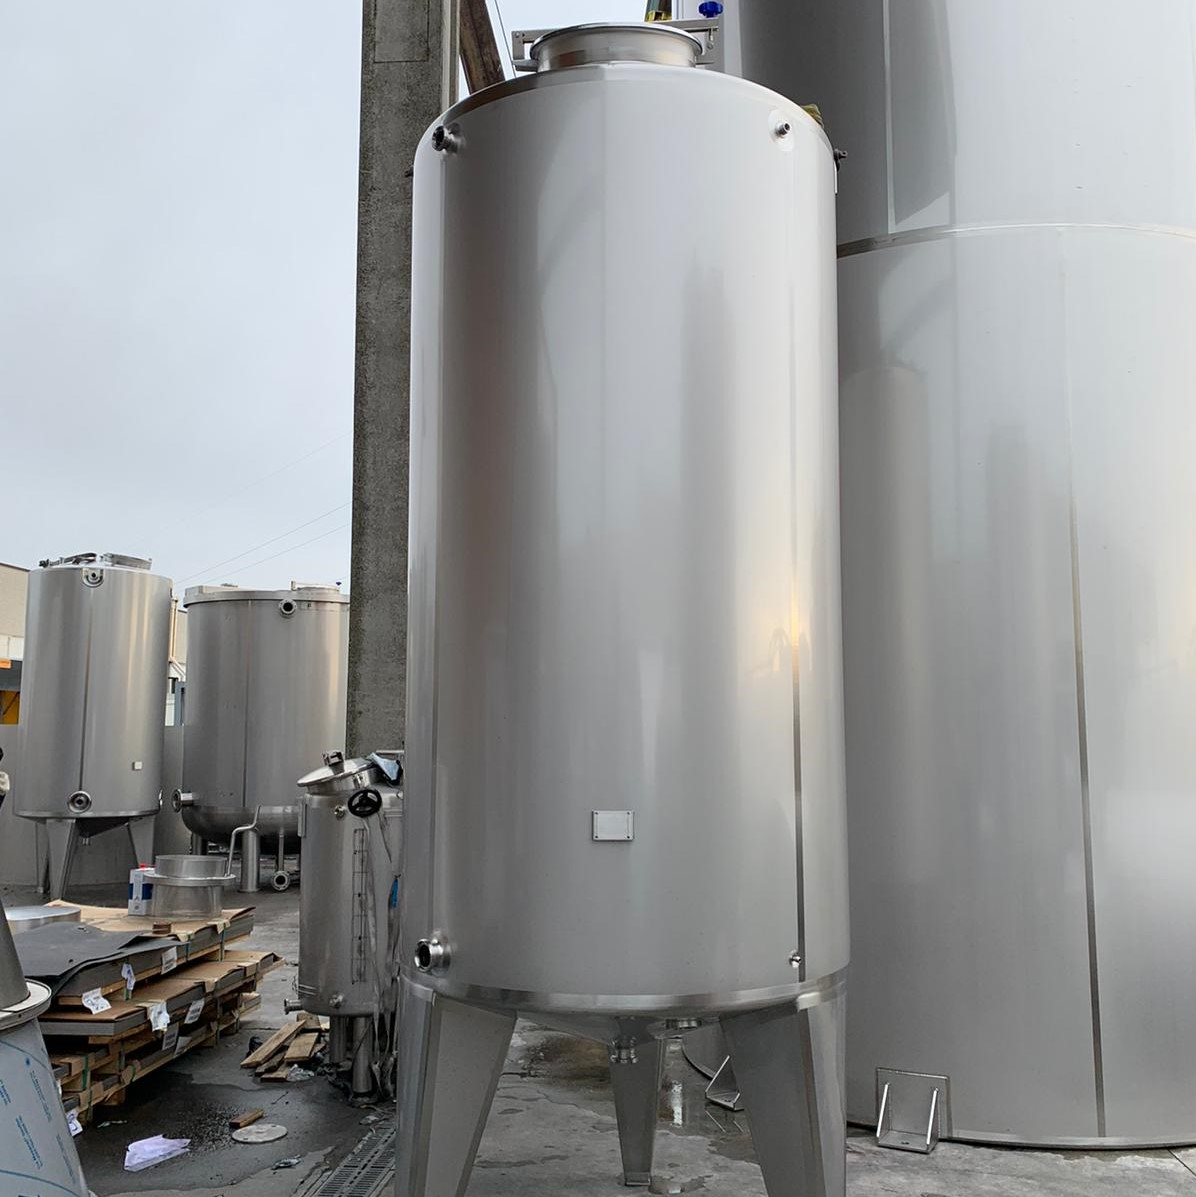 4x 5000 liter tanks for cleaning-in-place system (CIP)